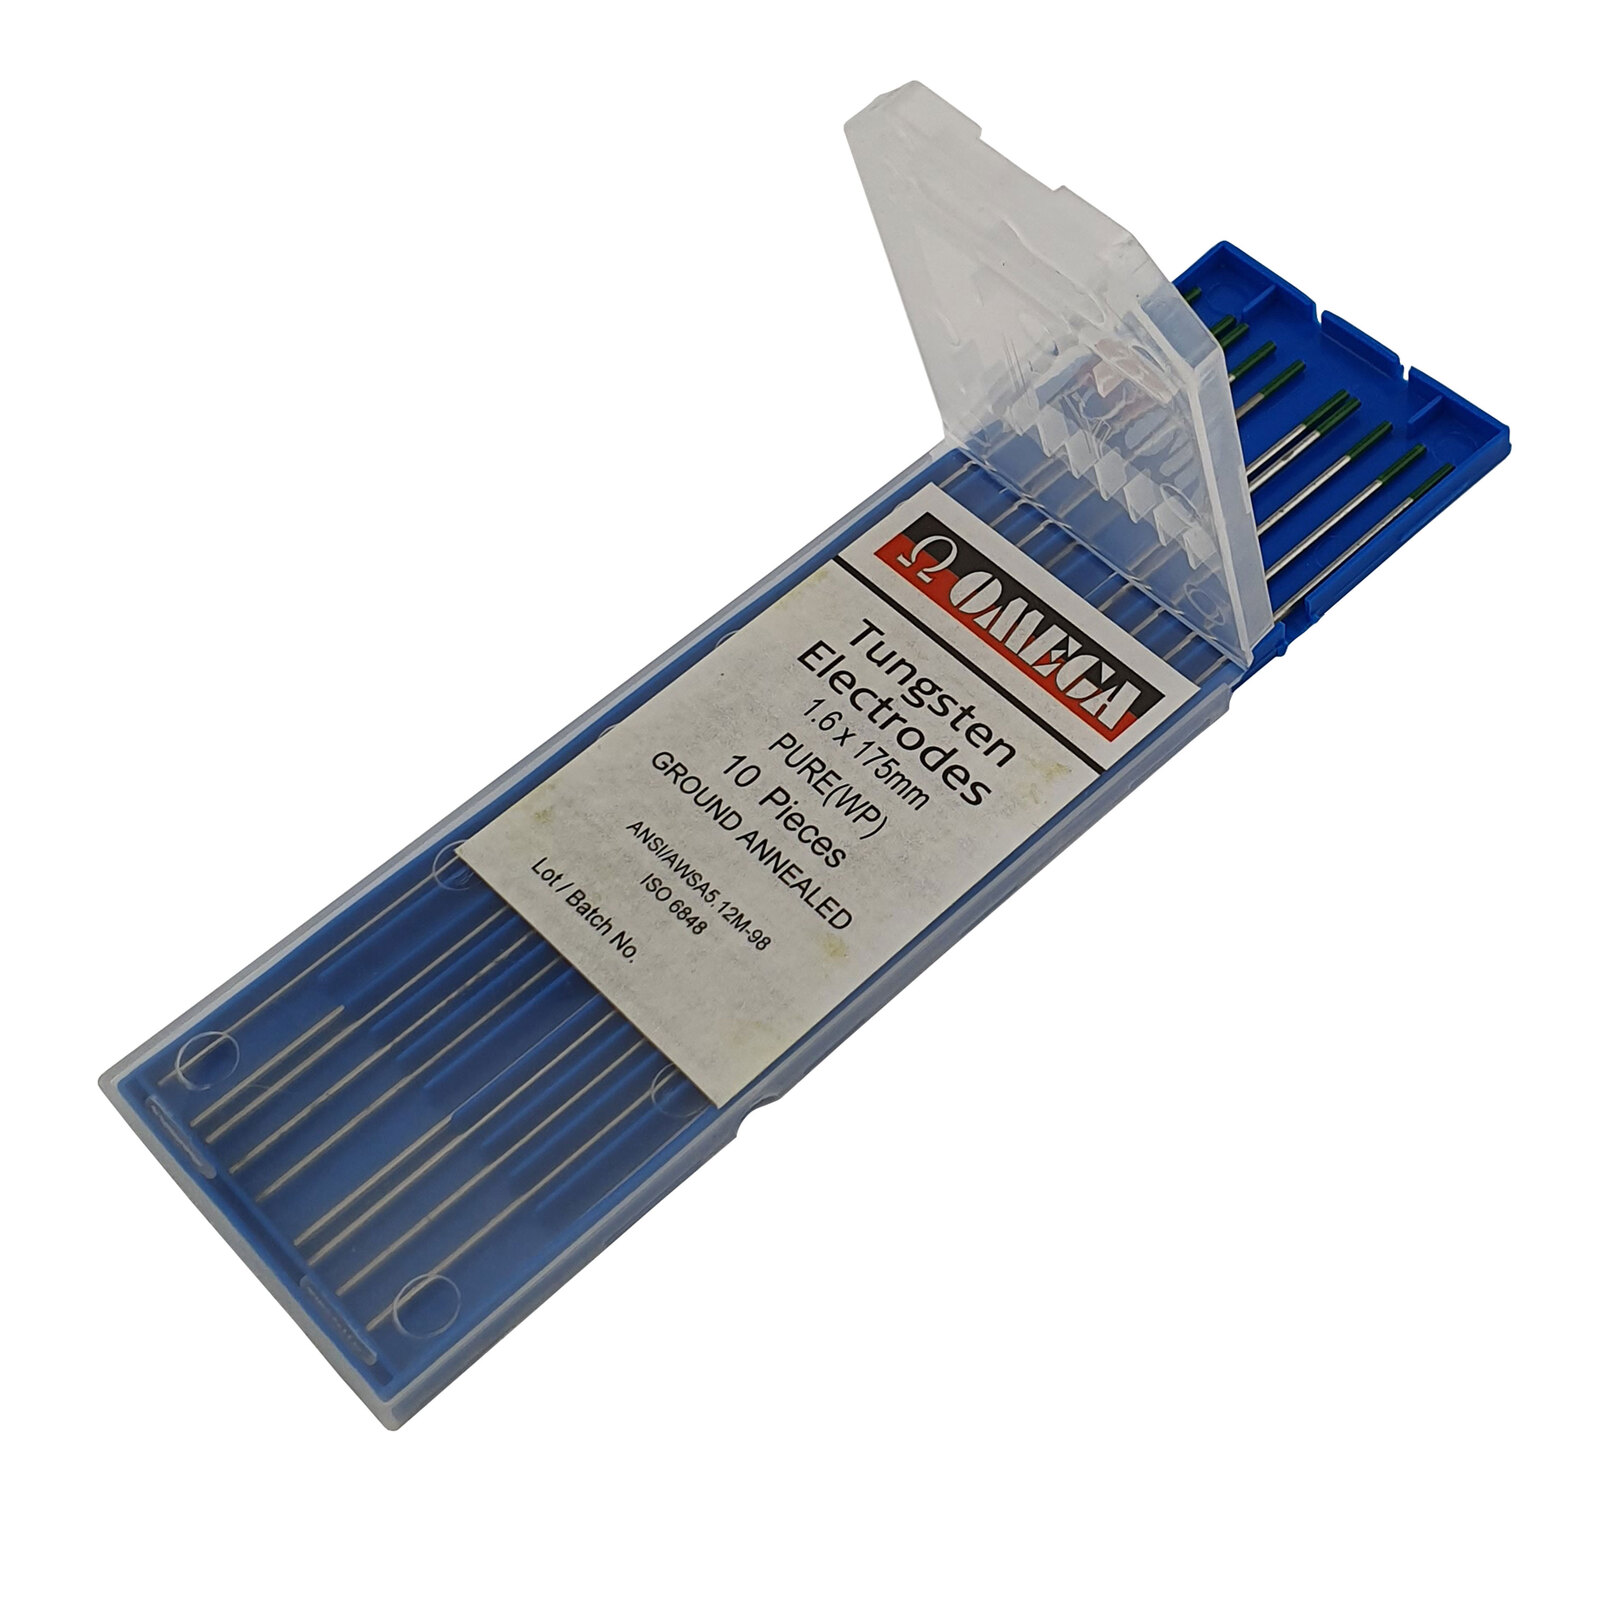 Green Tip 10 Pack 1.6mm PURE TIG 100/% Tungsten Electrodes 10 Each